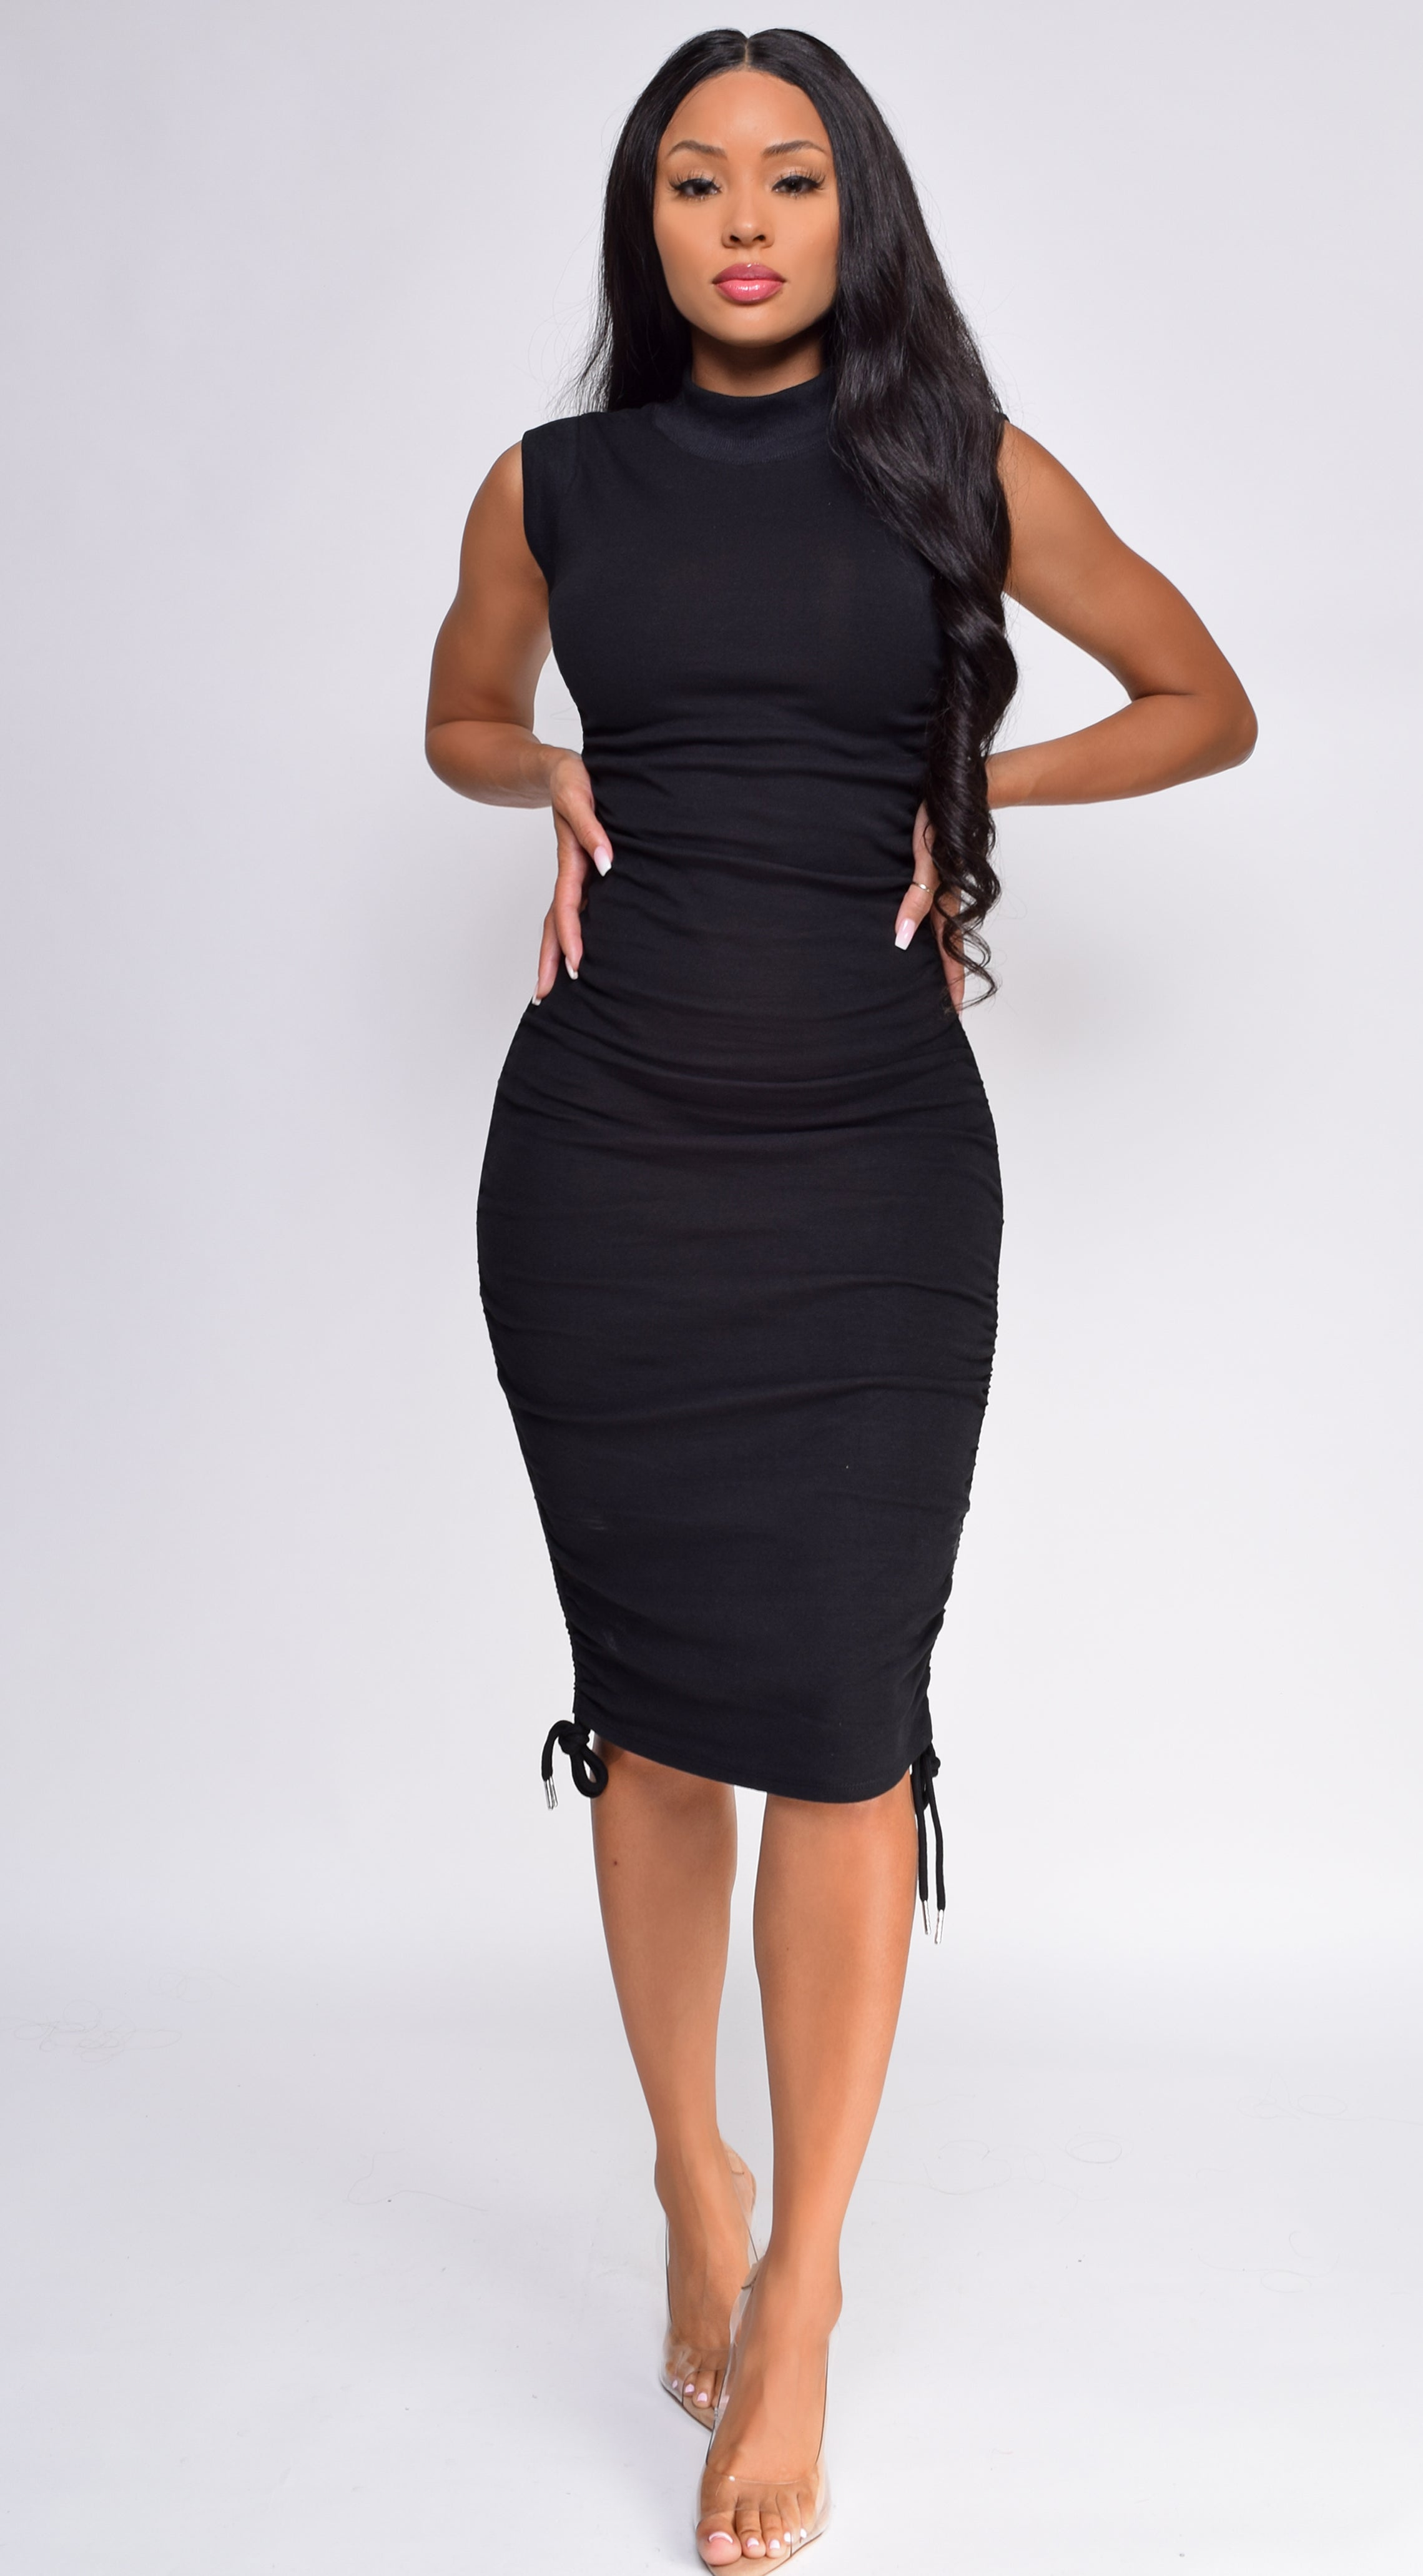 Harleen Black High Neck Ruched Dress